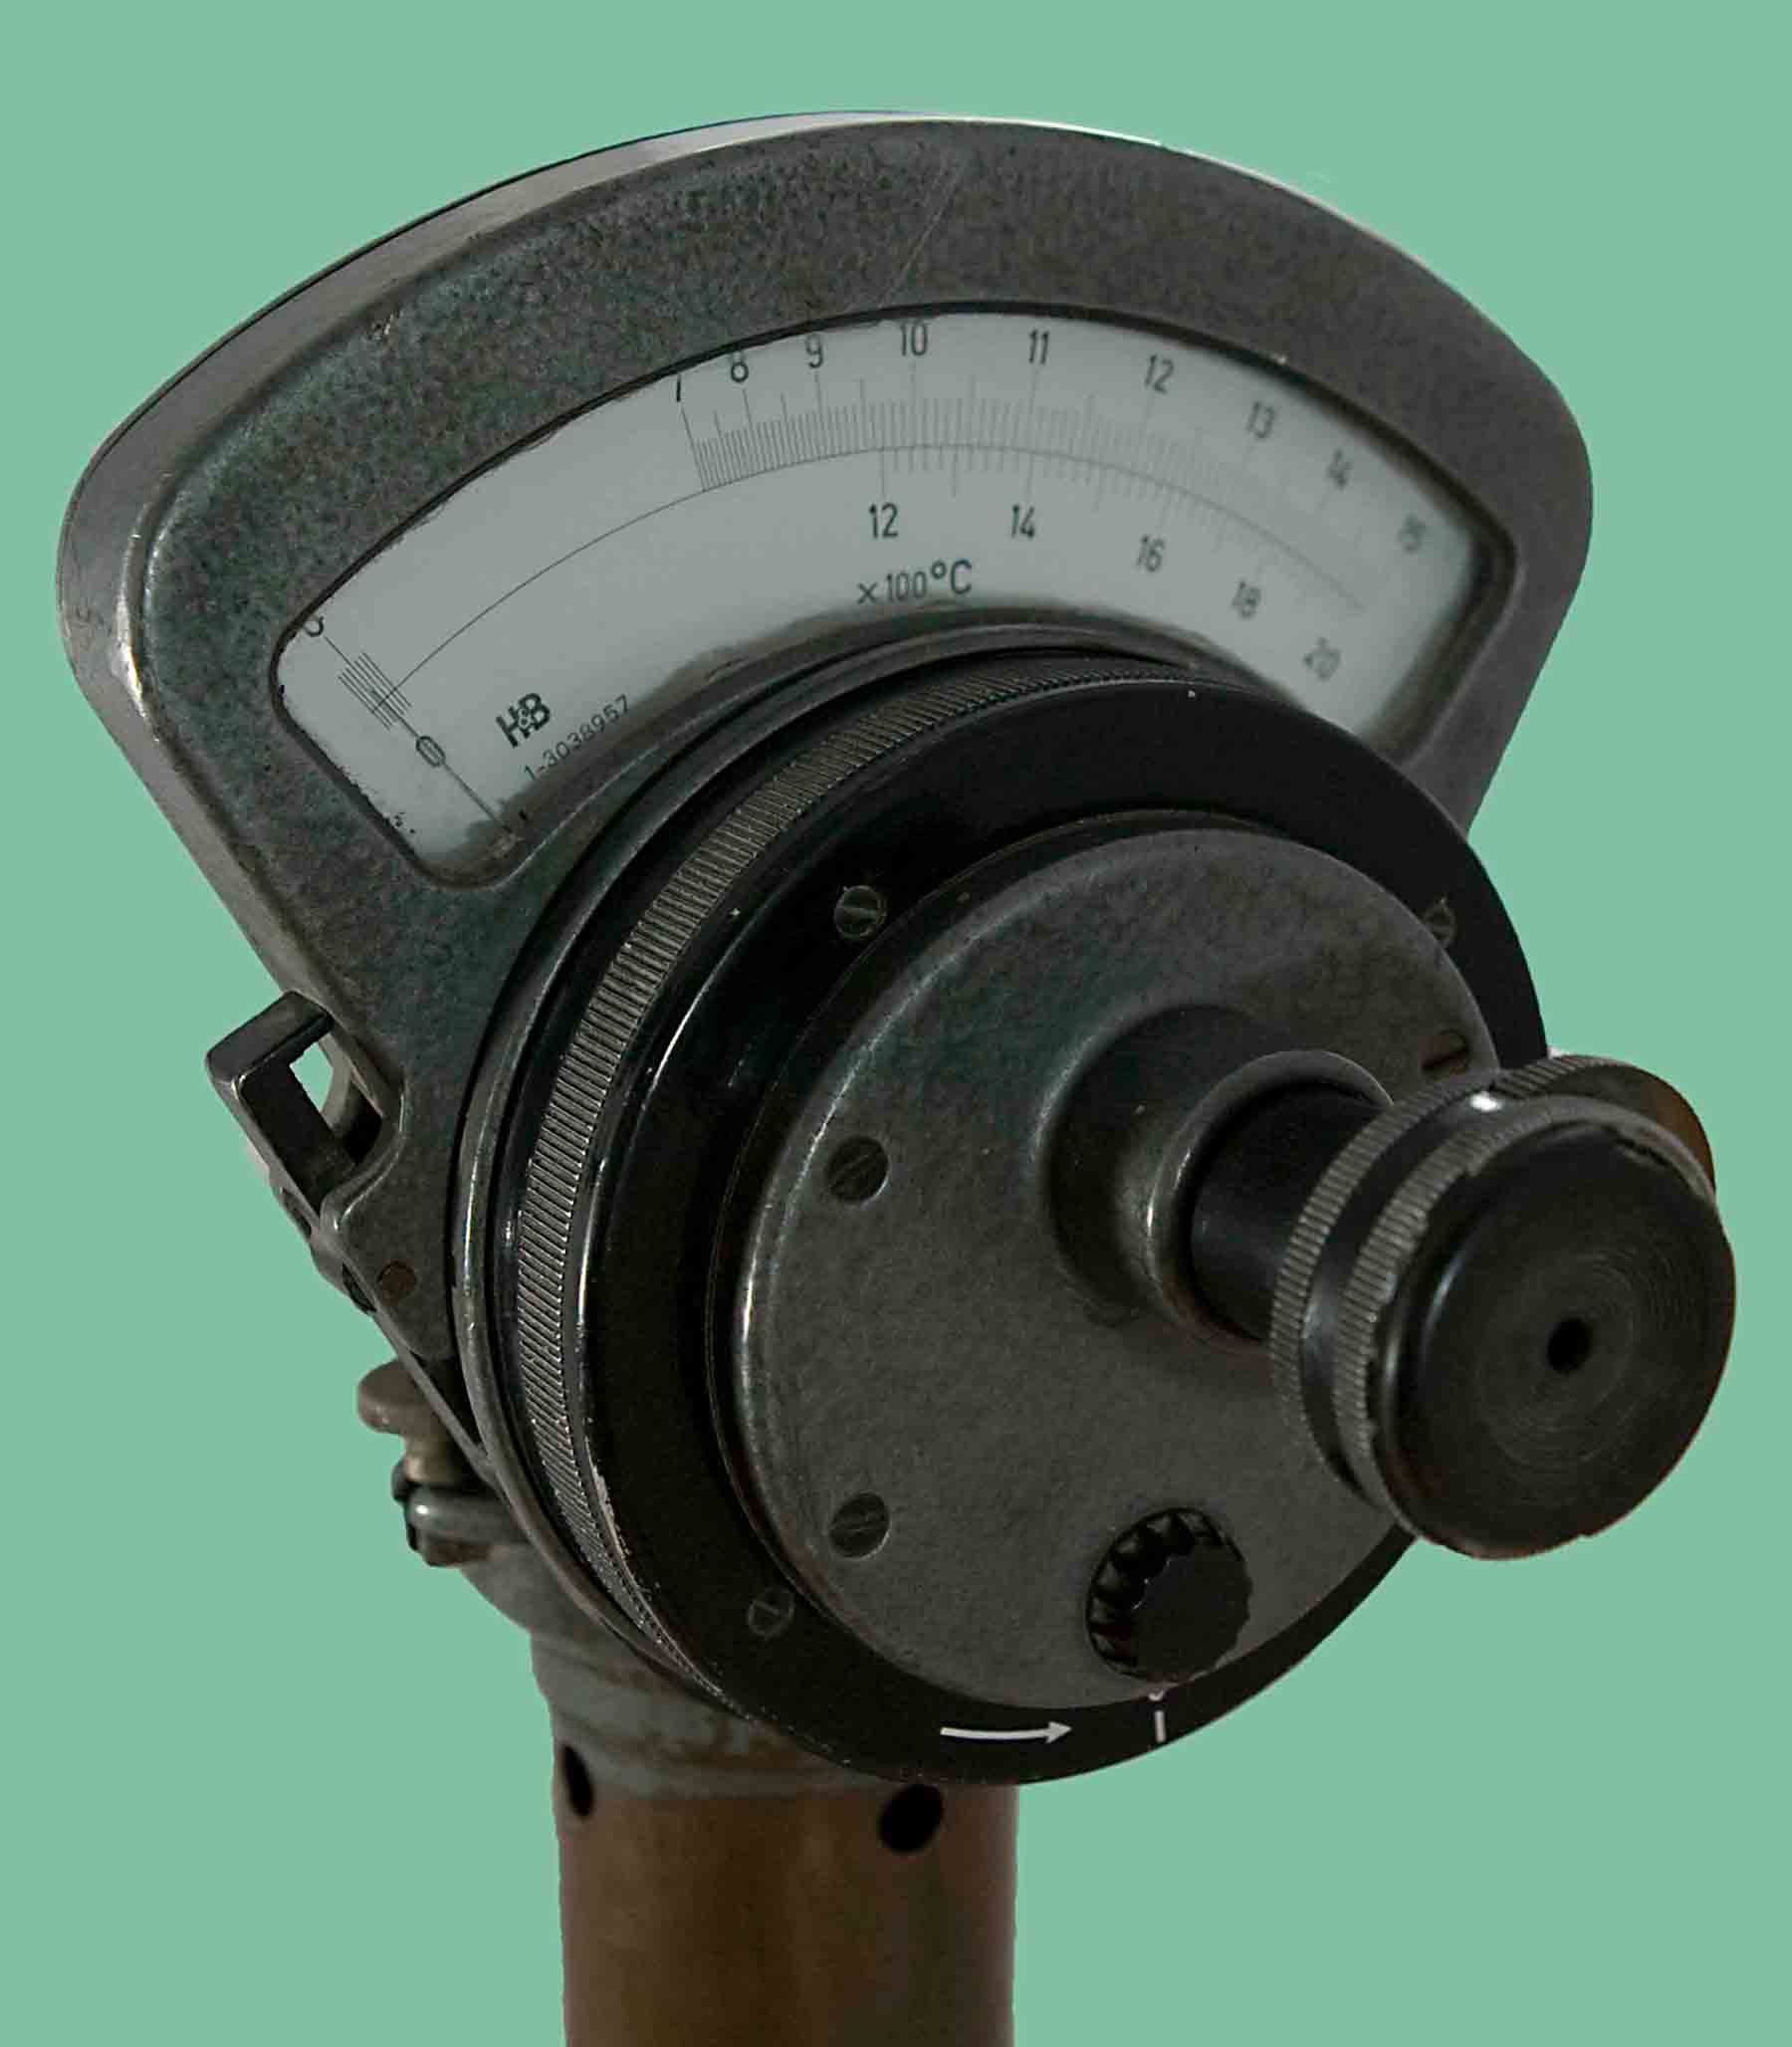 Deprez_Photo_Pyrometer_H&B_Front_view_dial.jpg